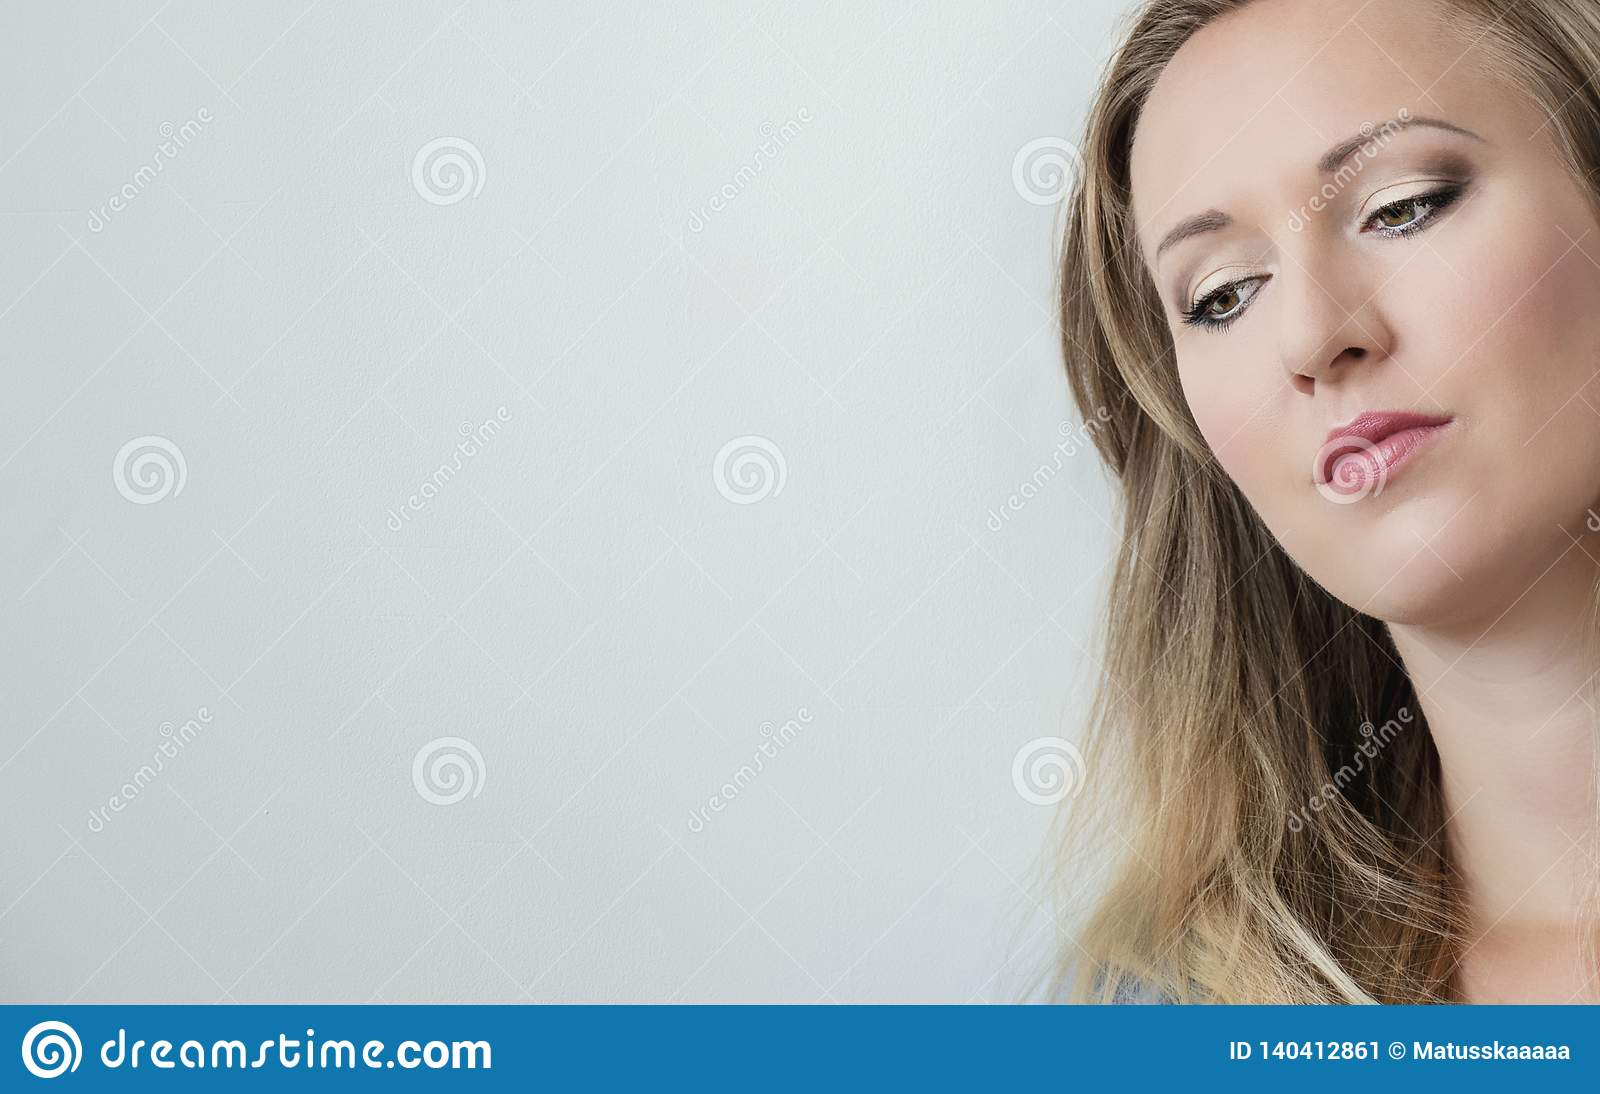 Close-up portrait of attractive young beautiful woman face looking down. Pretty blonde woman with green eyes